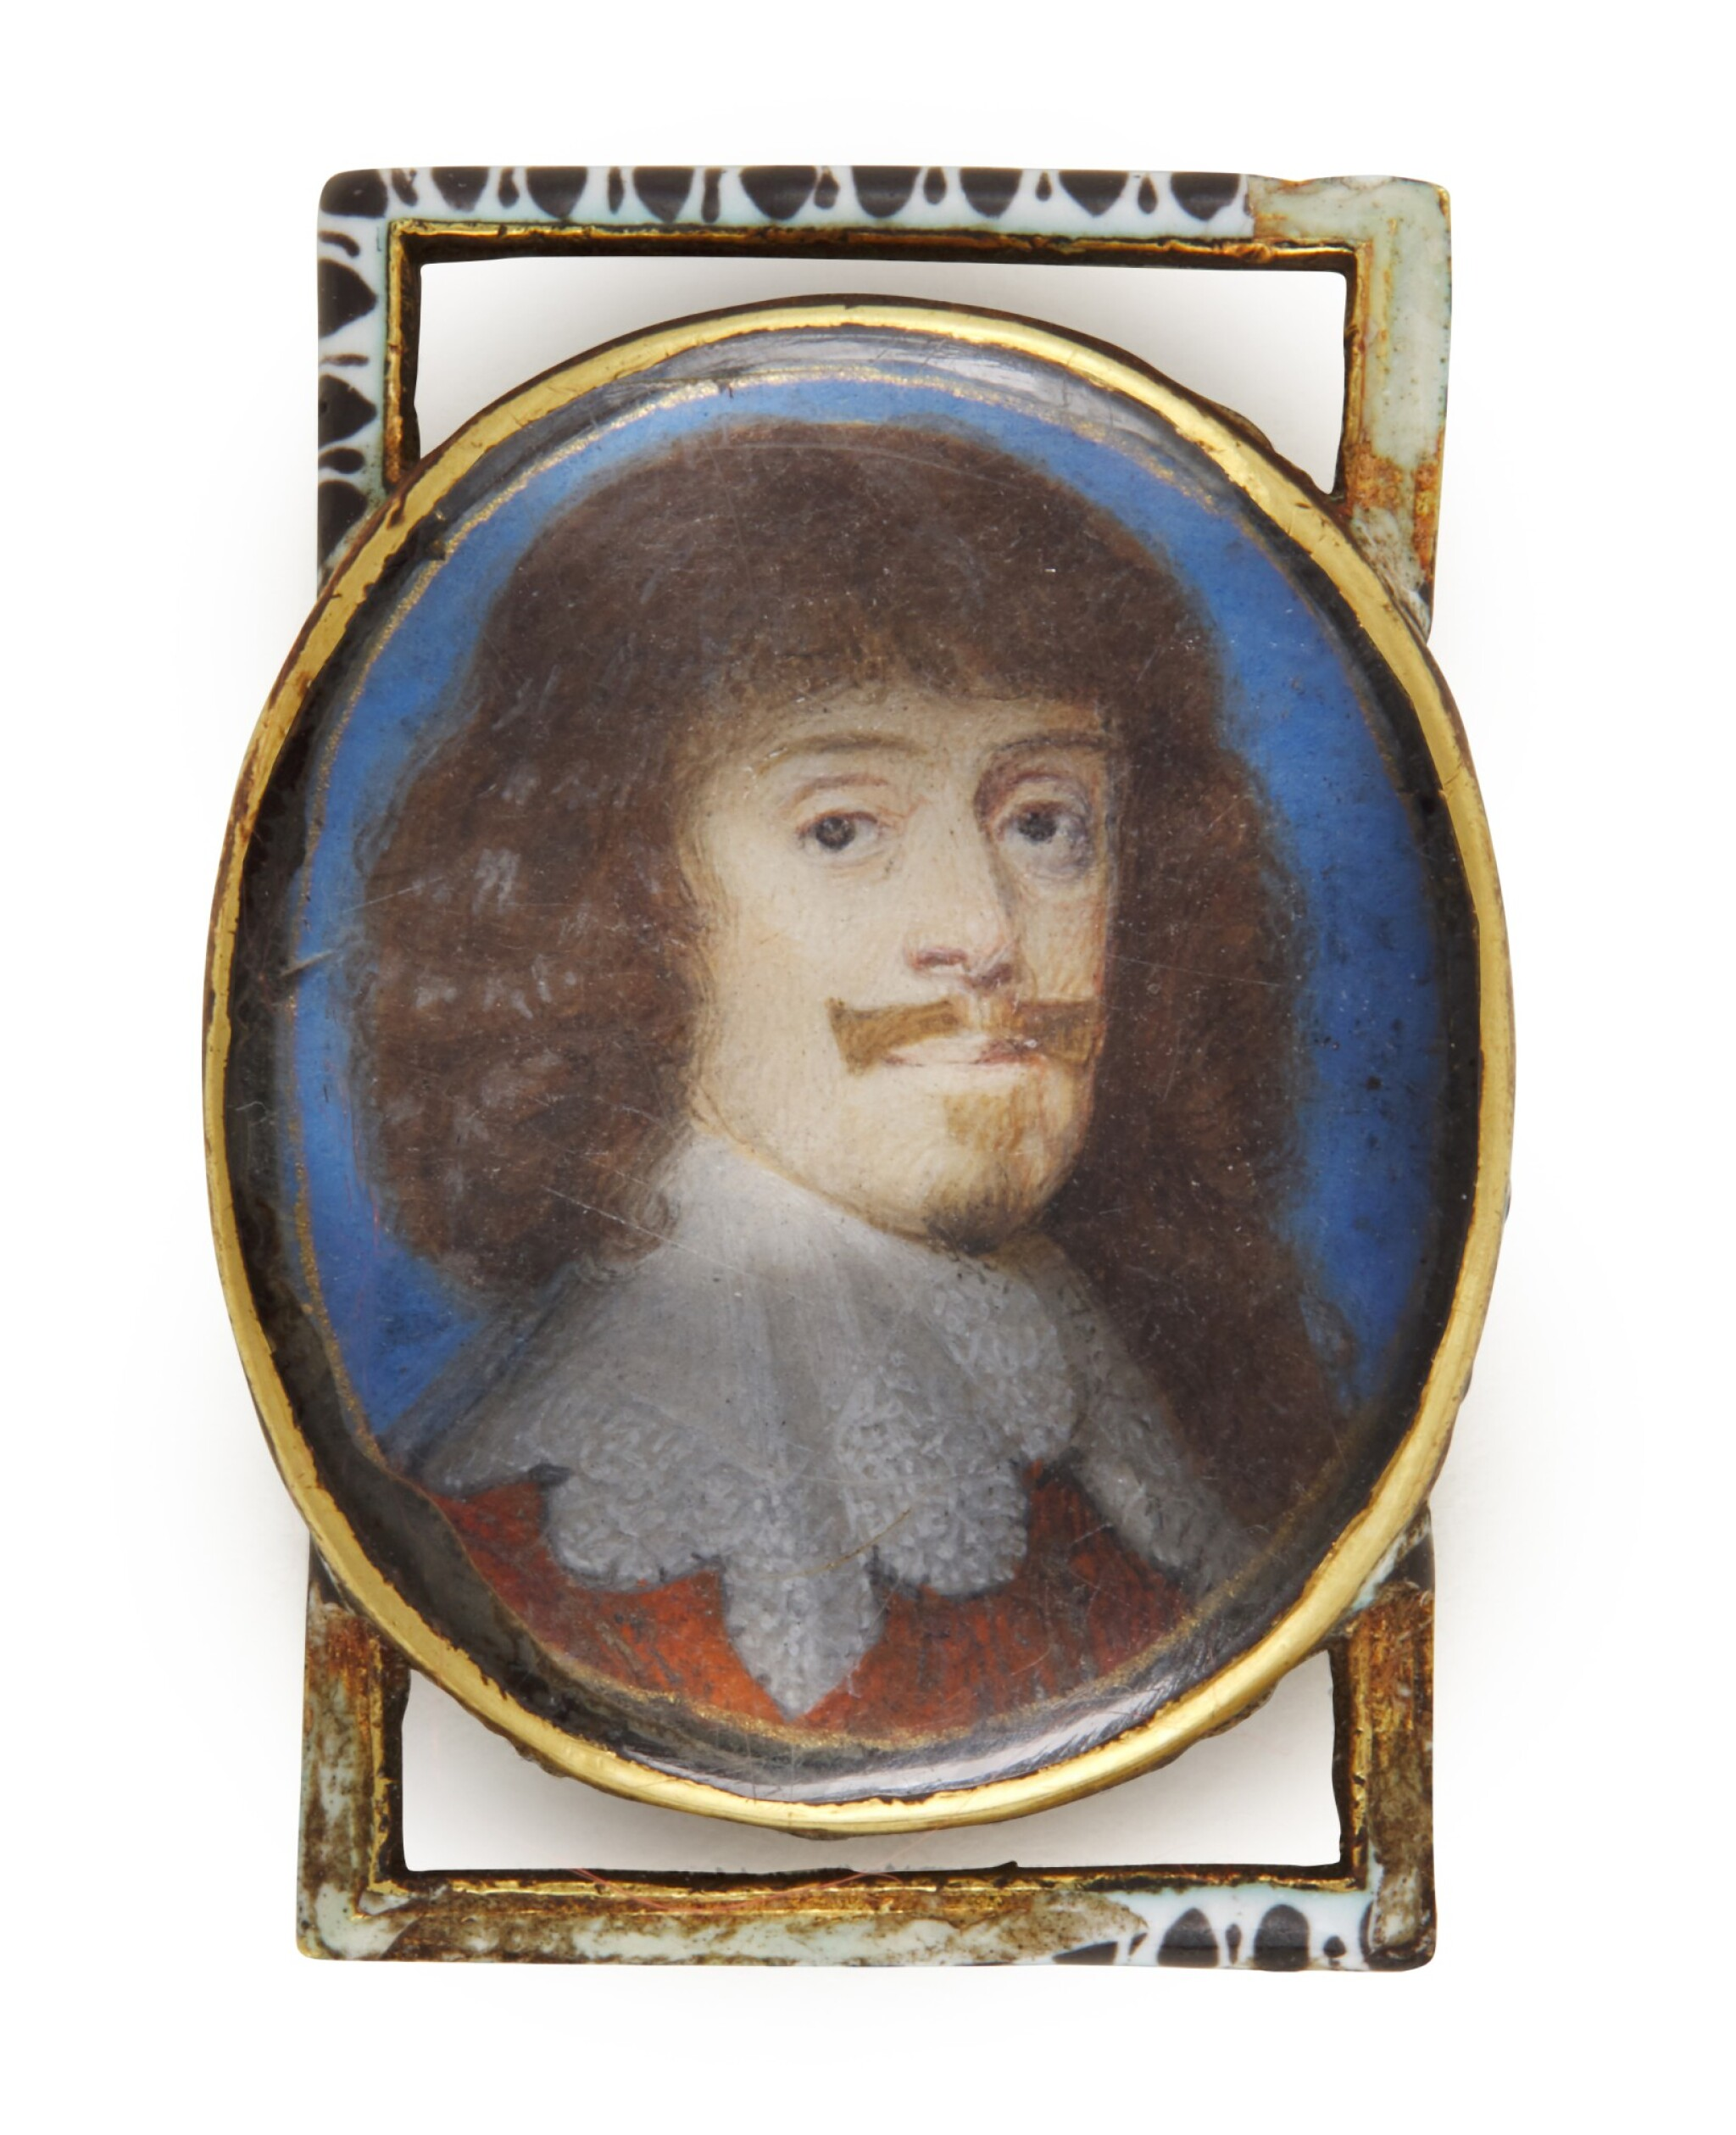 View 1 of Lot 92. Portrait of Prince William V of Hessen-Kassel (1602-1637).